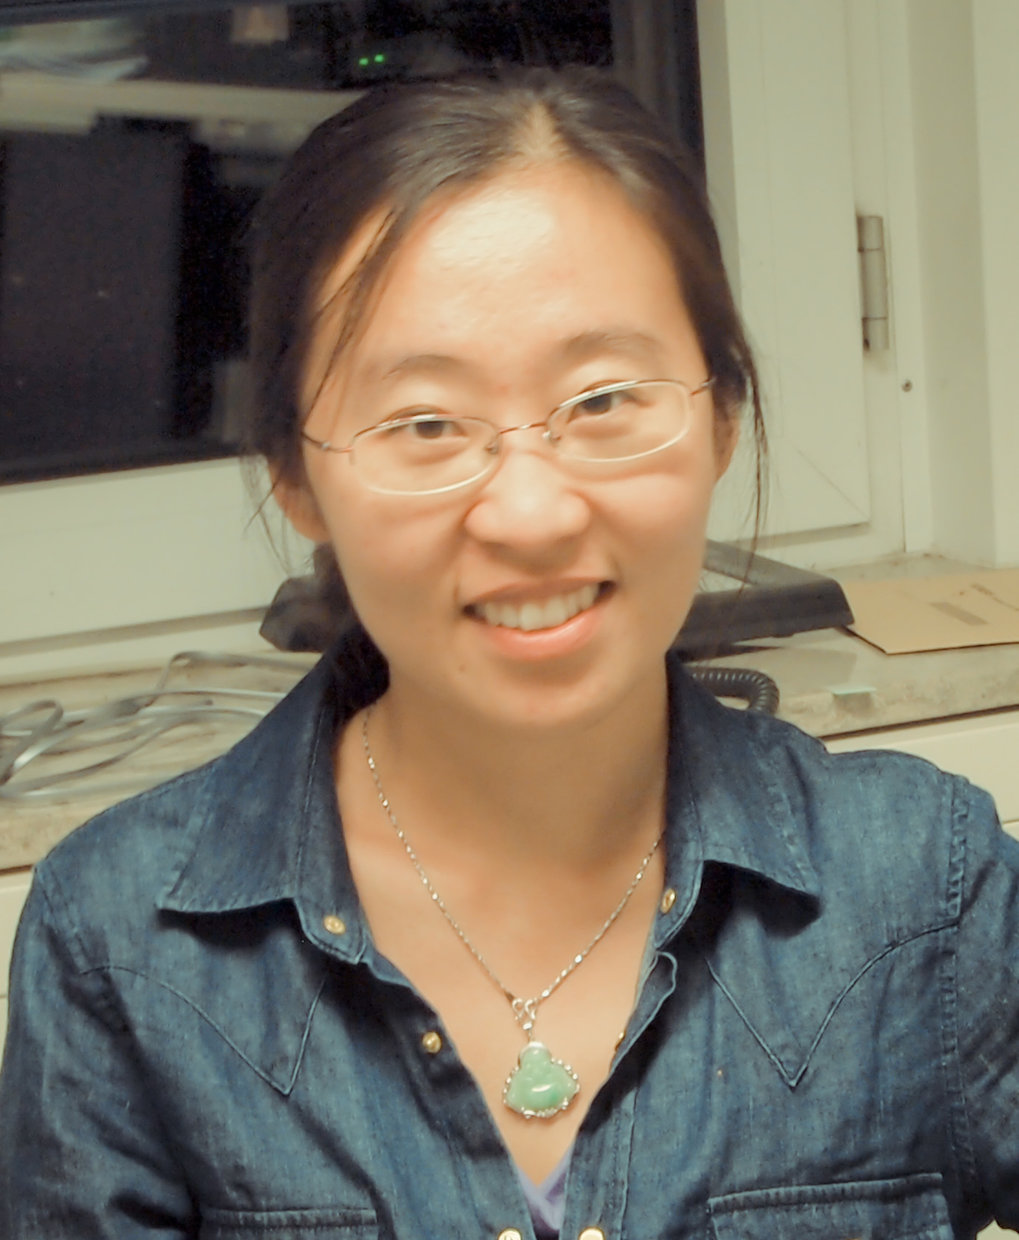 Cindy was born in China, and studied Business Management and Biochemistry and Molecular Biology in the Ocean University of China. She received the Masters Degree of Science from Ghent University Belgium in 2012. Between 2012 and 2016, as member of the IMPRS, Cindy was working on Evolutionary Game Theory and population dynamics in the Research Group of Evolutionary Theory at the Max Planck Institute in Plön, supervised by Prof. Dr. Arne Traulsen. Cindy now moved to Switzerland where she is doing her postdoc in the lab of Prof. Dr. Hanna Kokko at the University of Zürich.Contact: li@evolbio.mpg.de